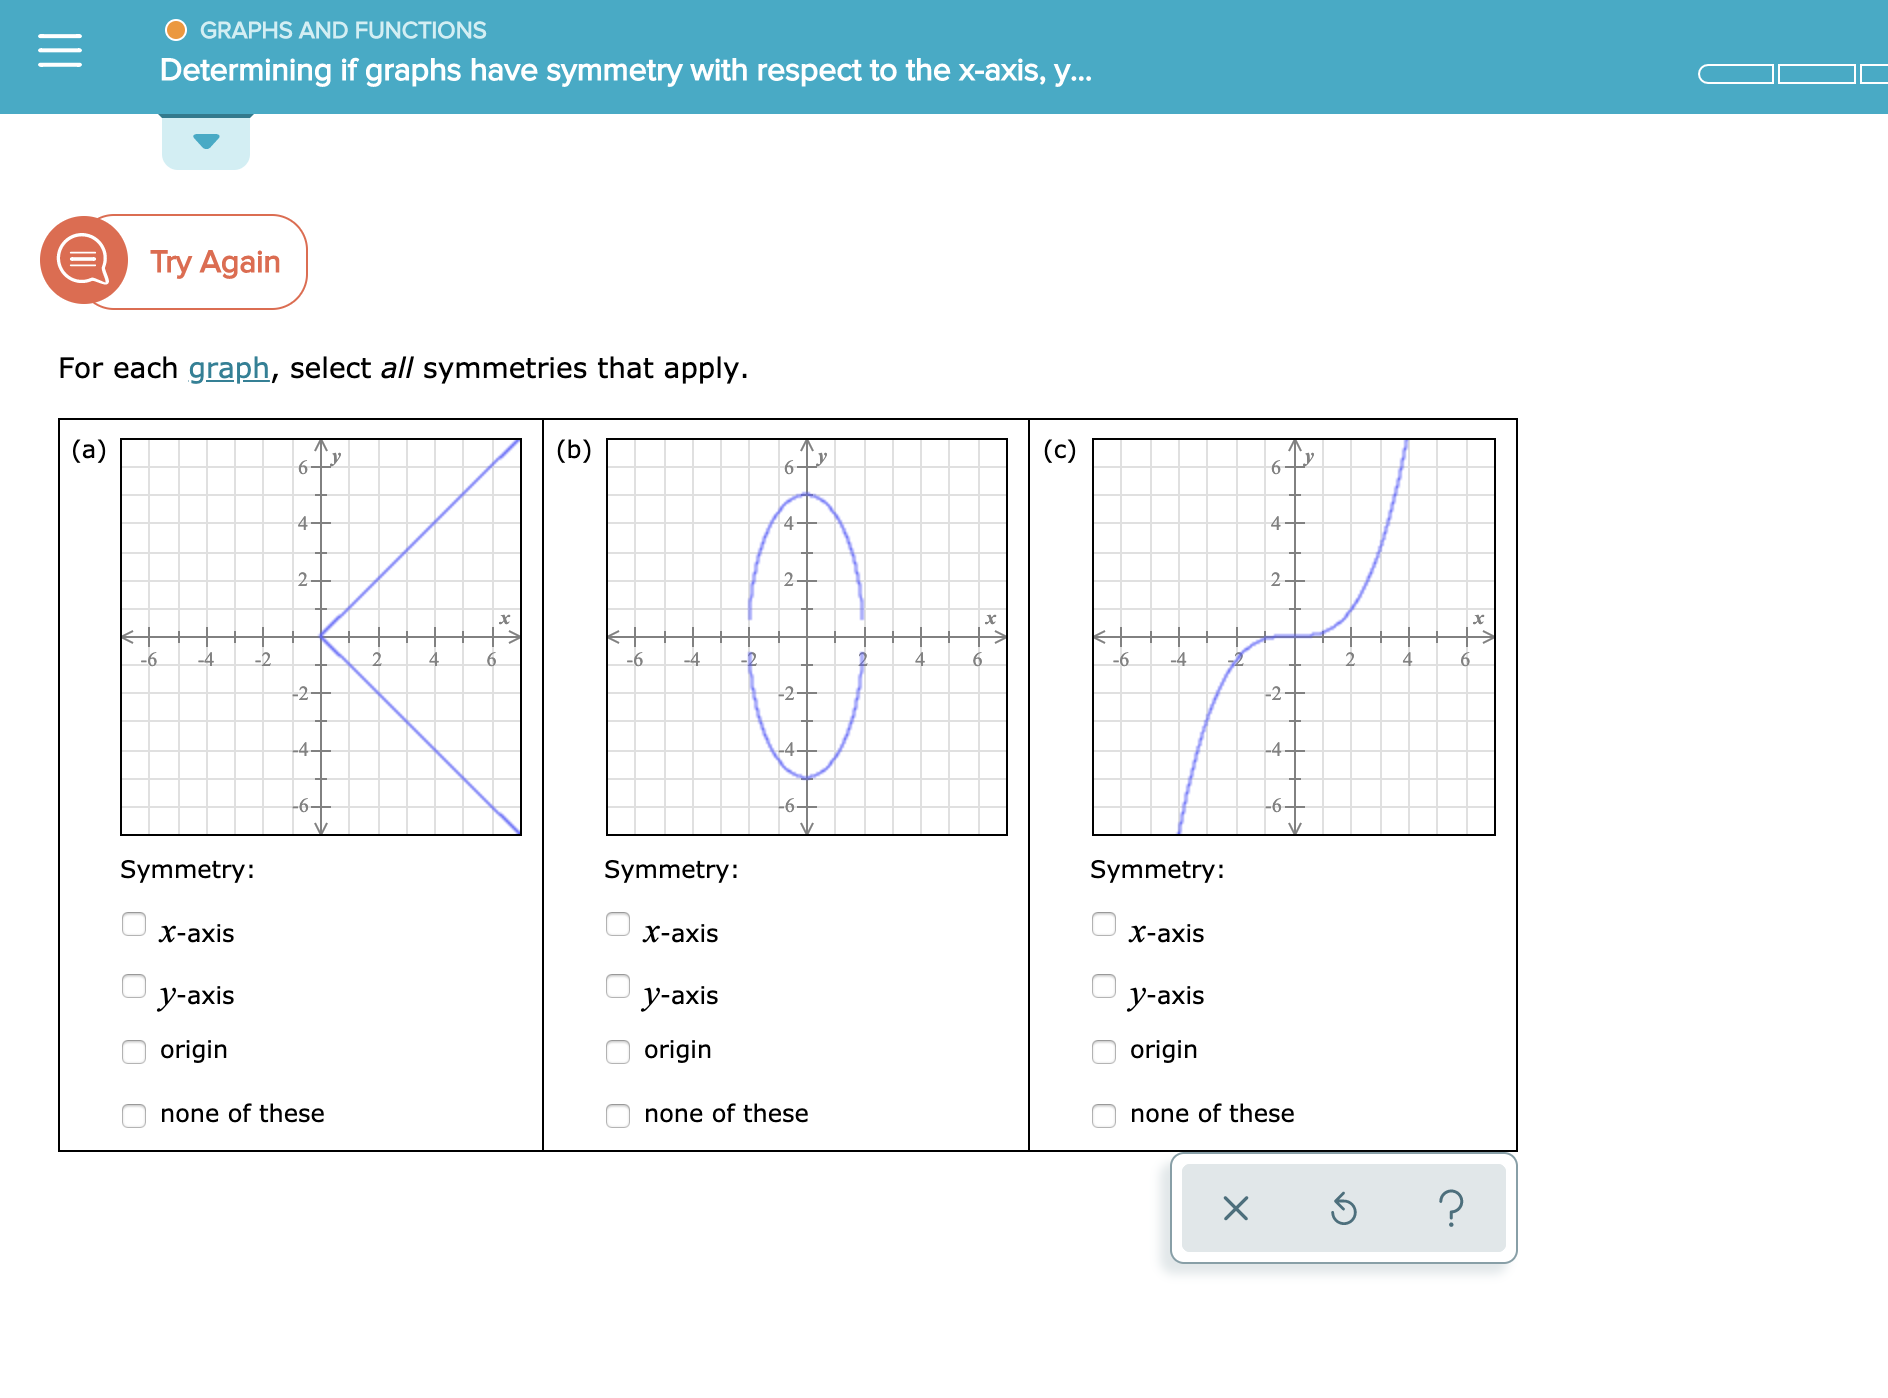 GRAPHS AND FUNCTIONS Determining if graphs have symmetry with respect to the x-axis, y... Try Again For each graph, select all symmetries that apply. (a) (b) (c) 65 6 4 4 4 2 2 2 4 -2 -4 6 4 -6 6 6 -2- -2 4 4 4- 6- -6- -6- Symmetry: Symmetry: Symmetry: х-ахis х-ахis х-ахis у-аxis y-axis у-аxis origin origin origin none of these none of these none of these ? X